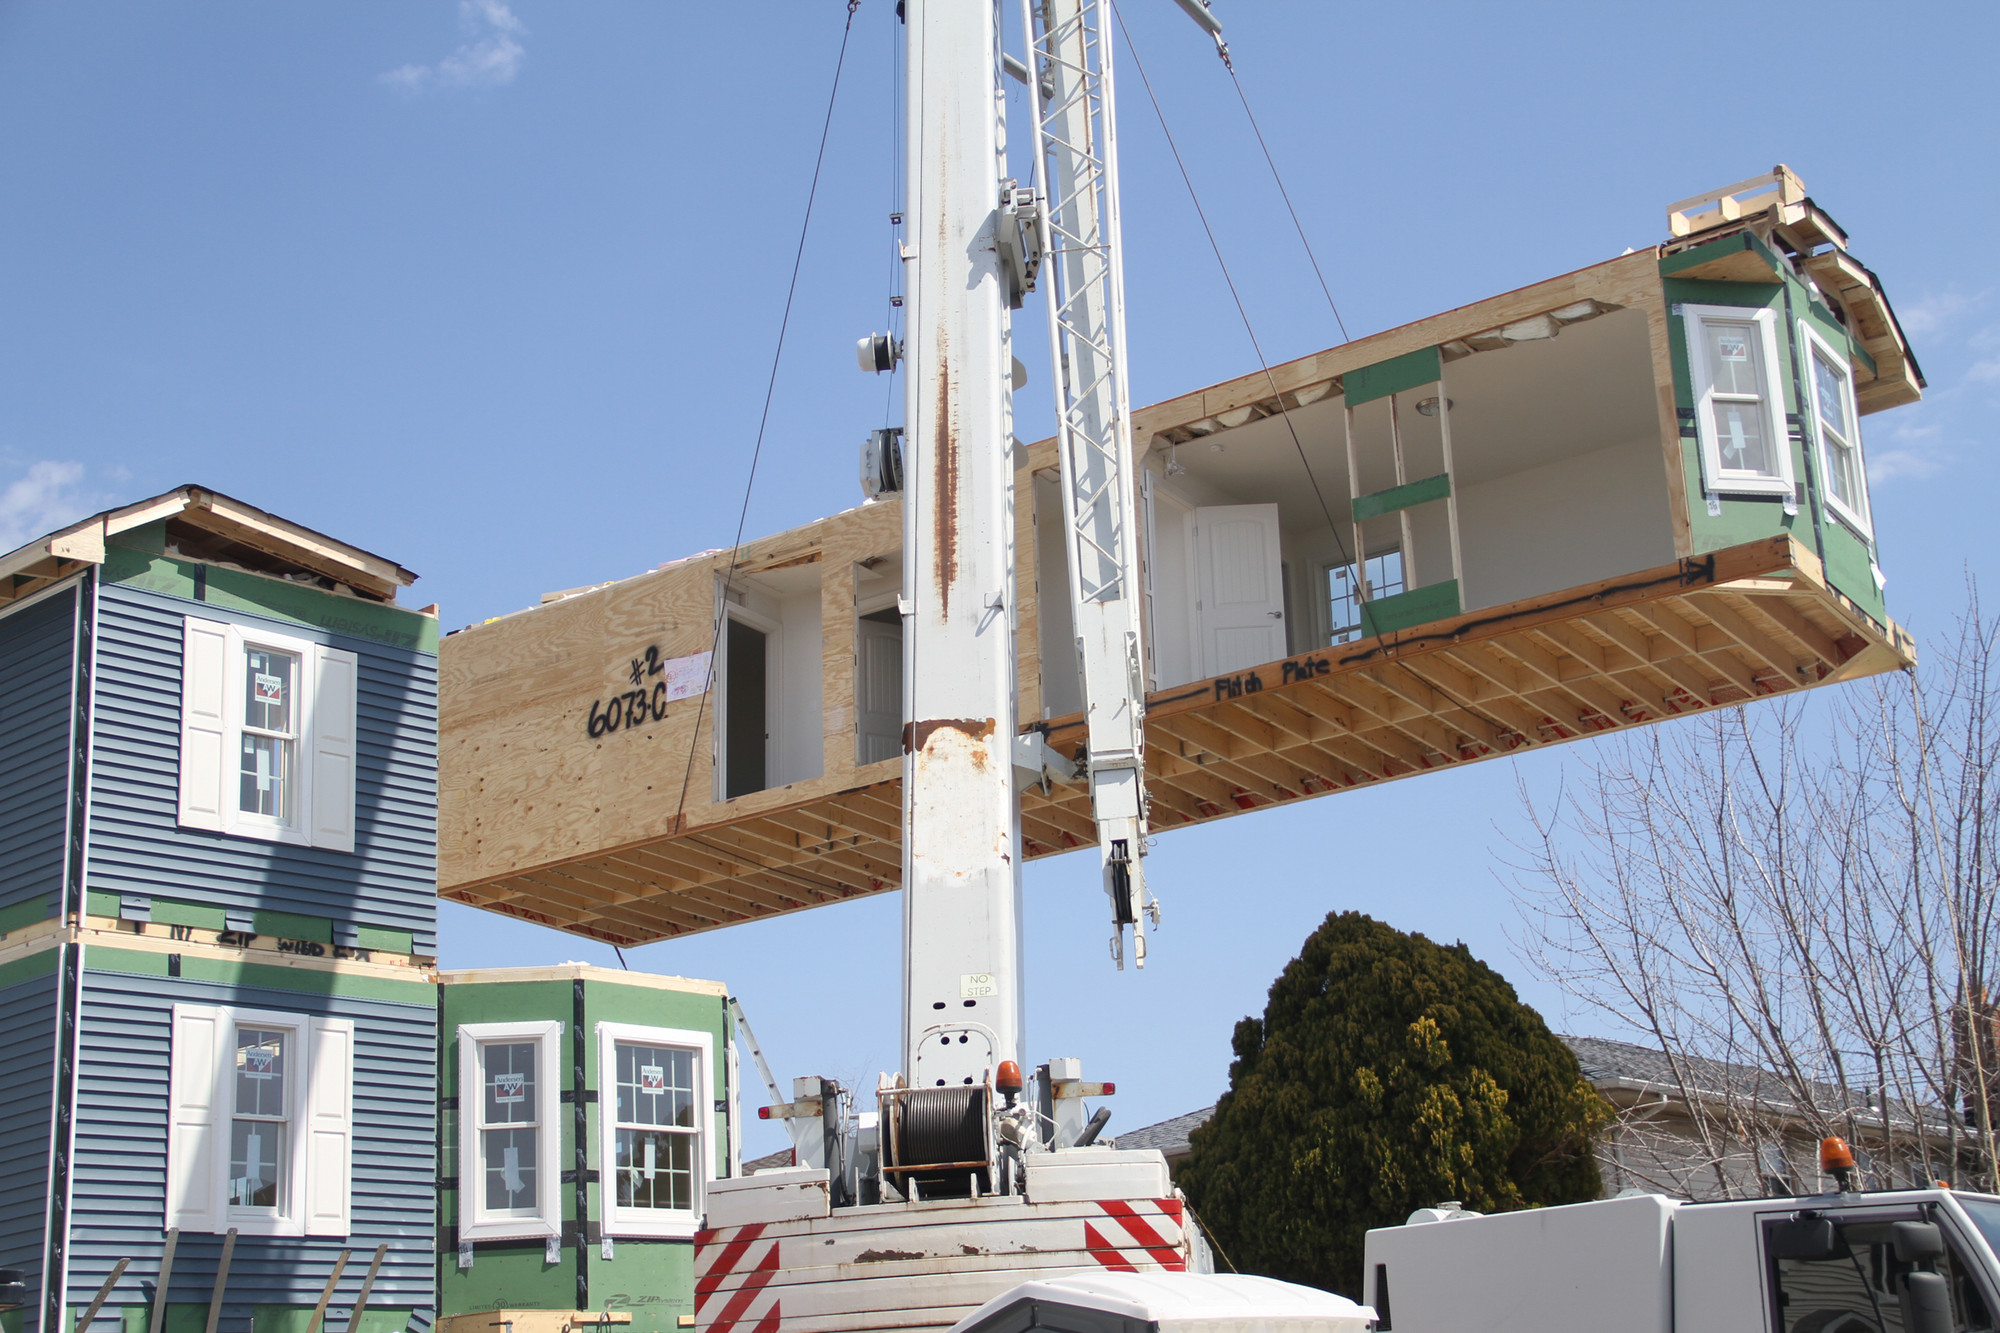 The house arrived in four parts, and installation of the modular home on East Fulton Street was mostly completed in a day.